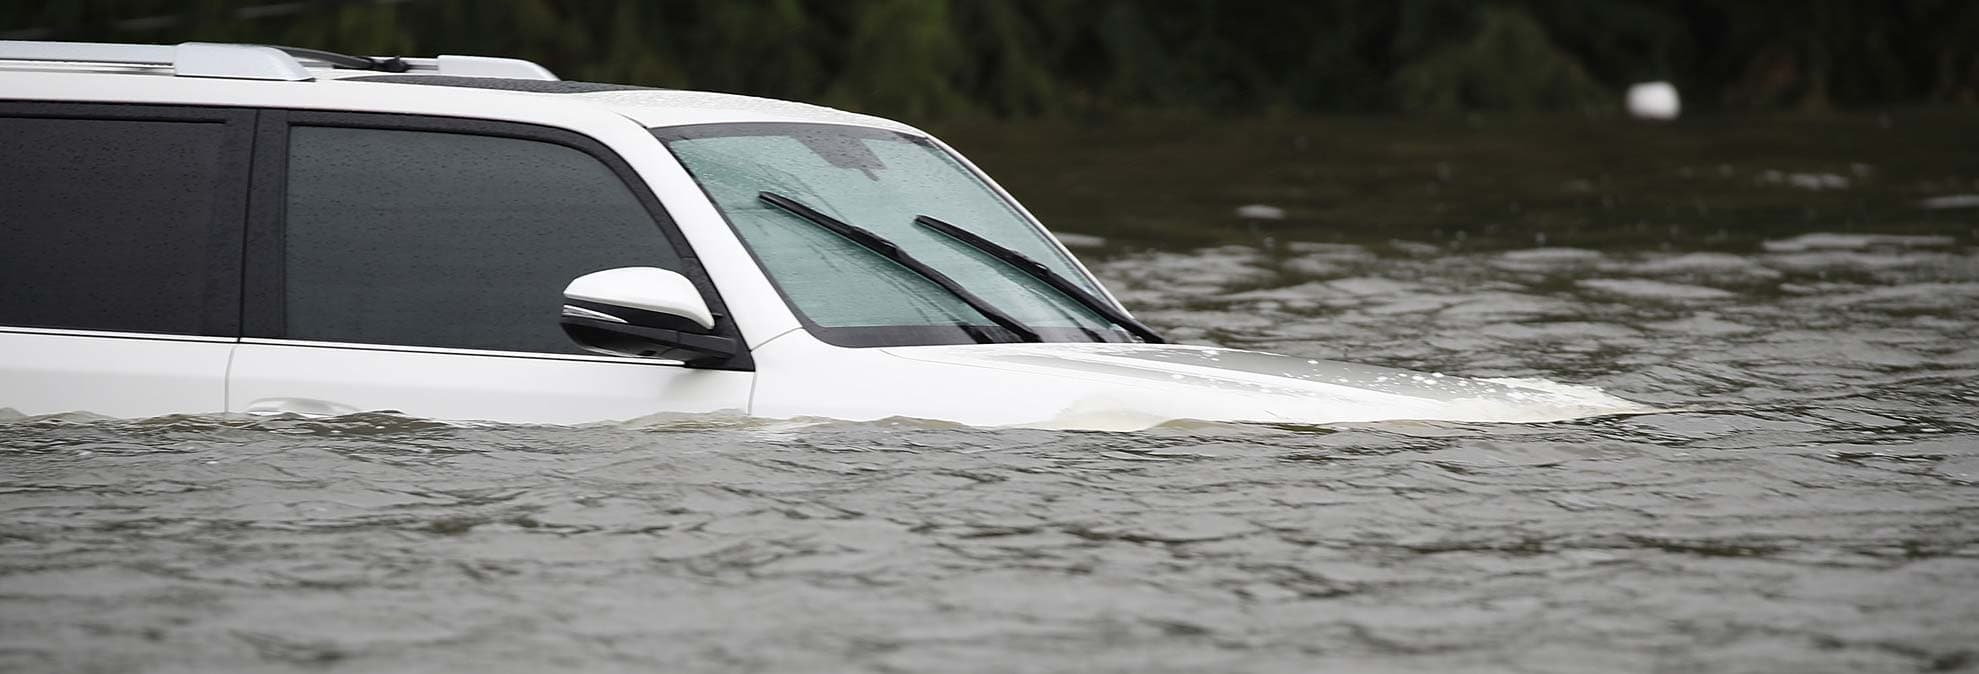 Ratings On Mattresses >> Why Flooded-Out Cars Are Likely Total Losses - Consumer Reports